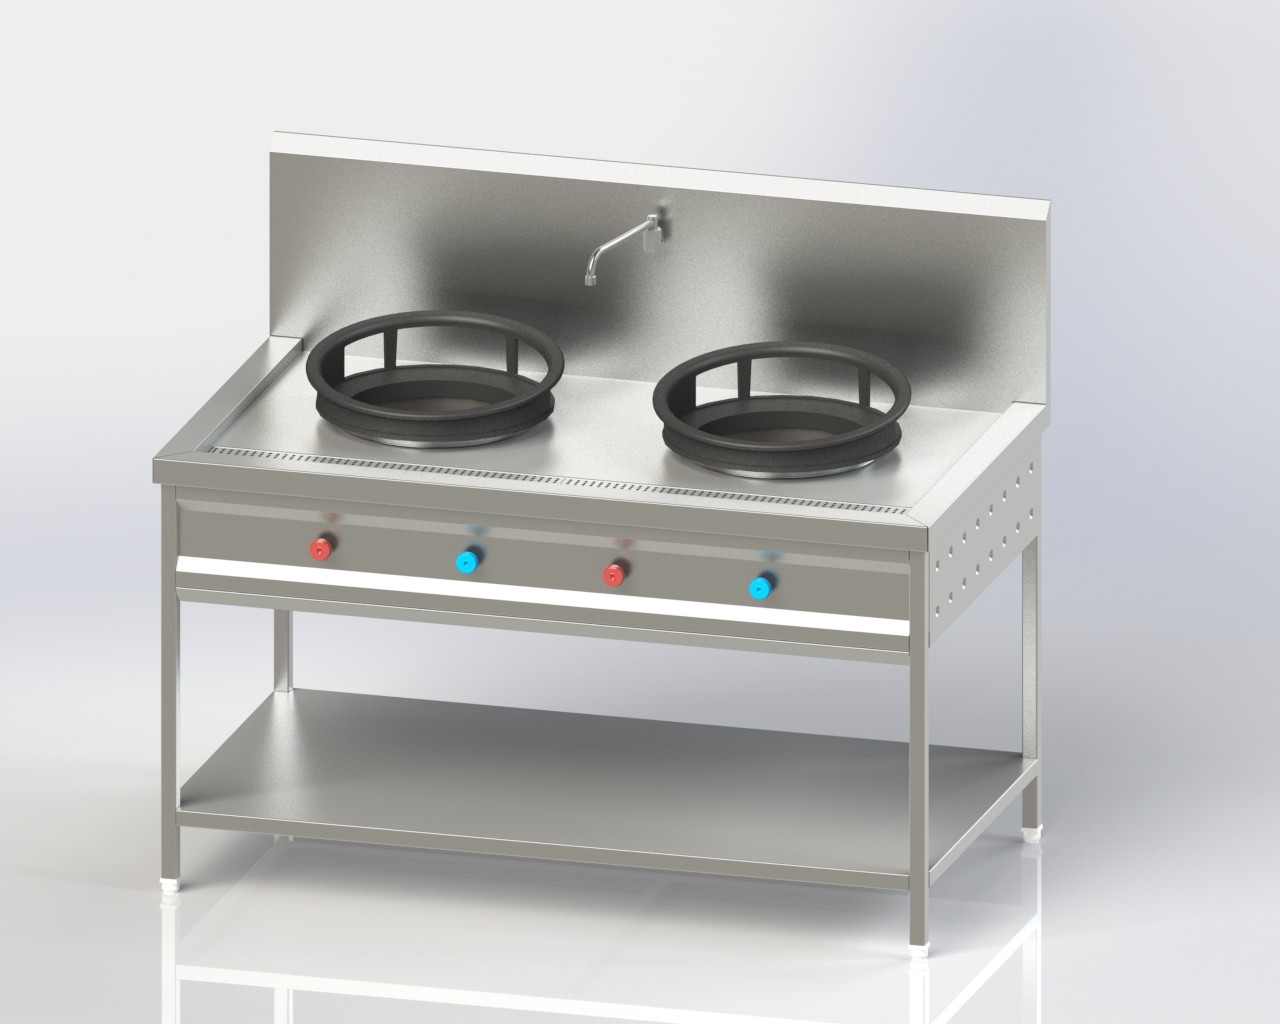 Double Burner Chinese Cooking Range